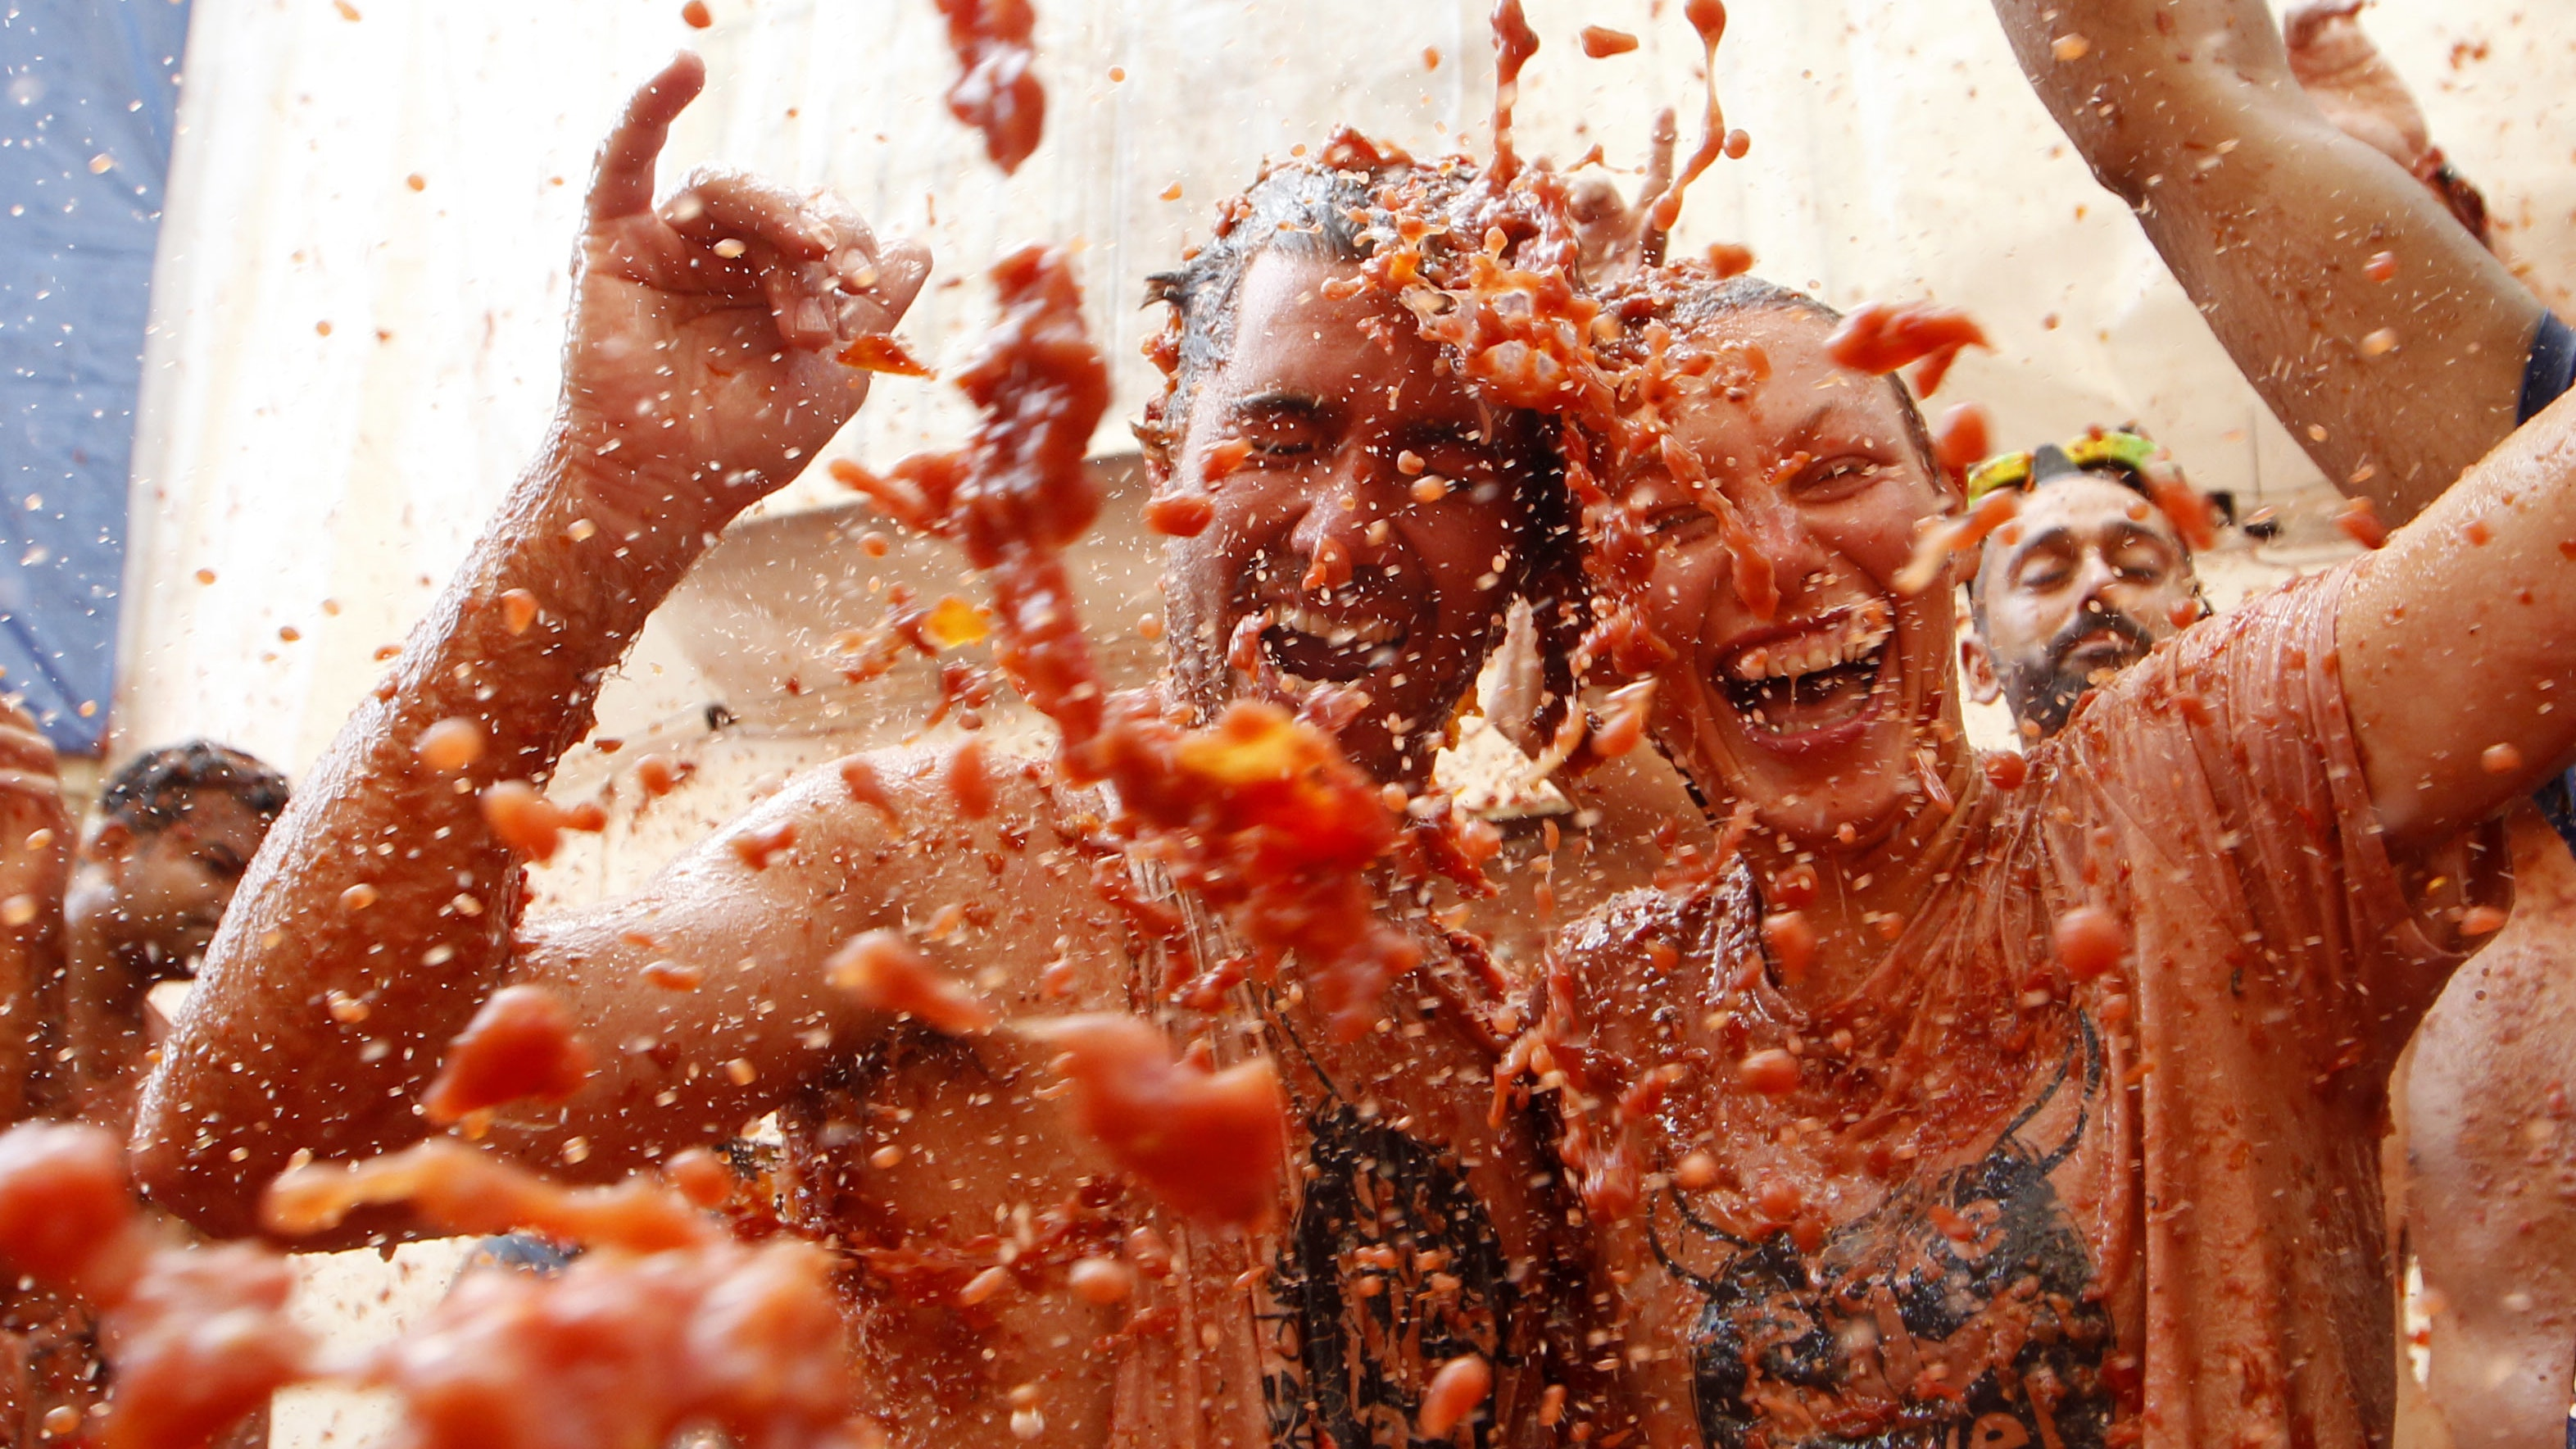 In Pictures Thousands Paint The Town Red At Tomatina Festival